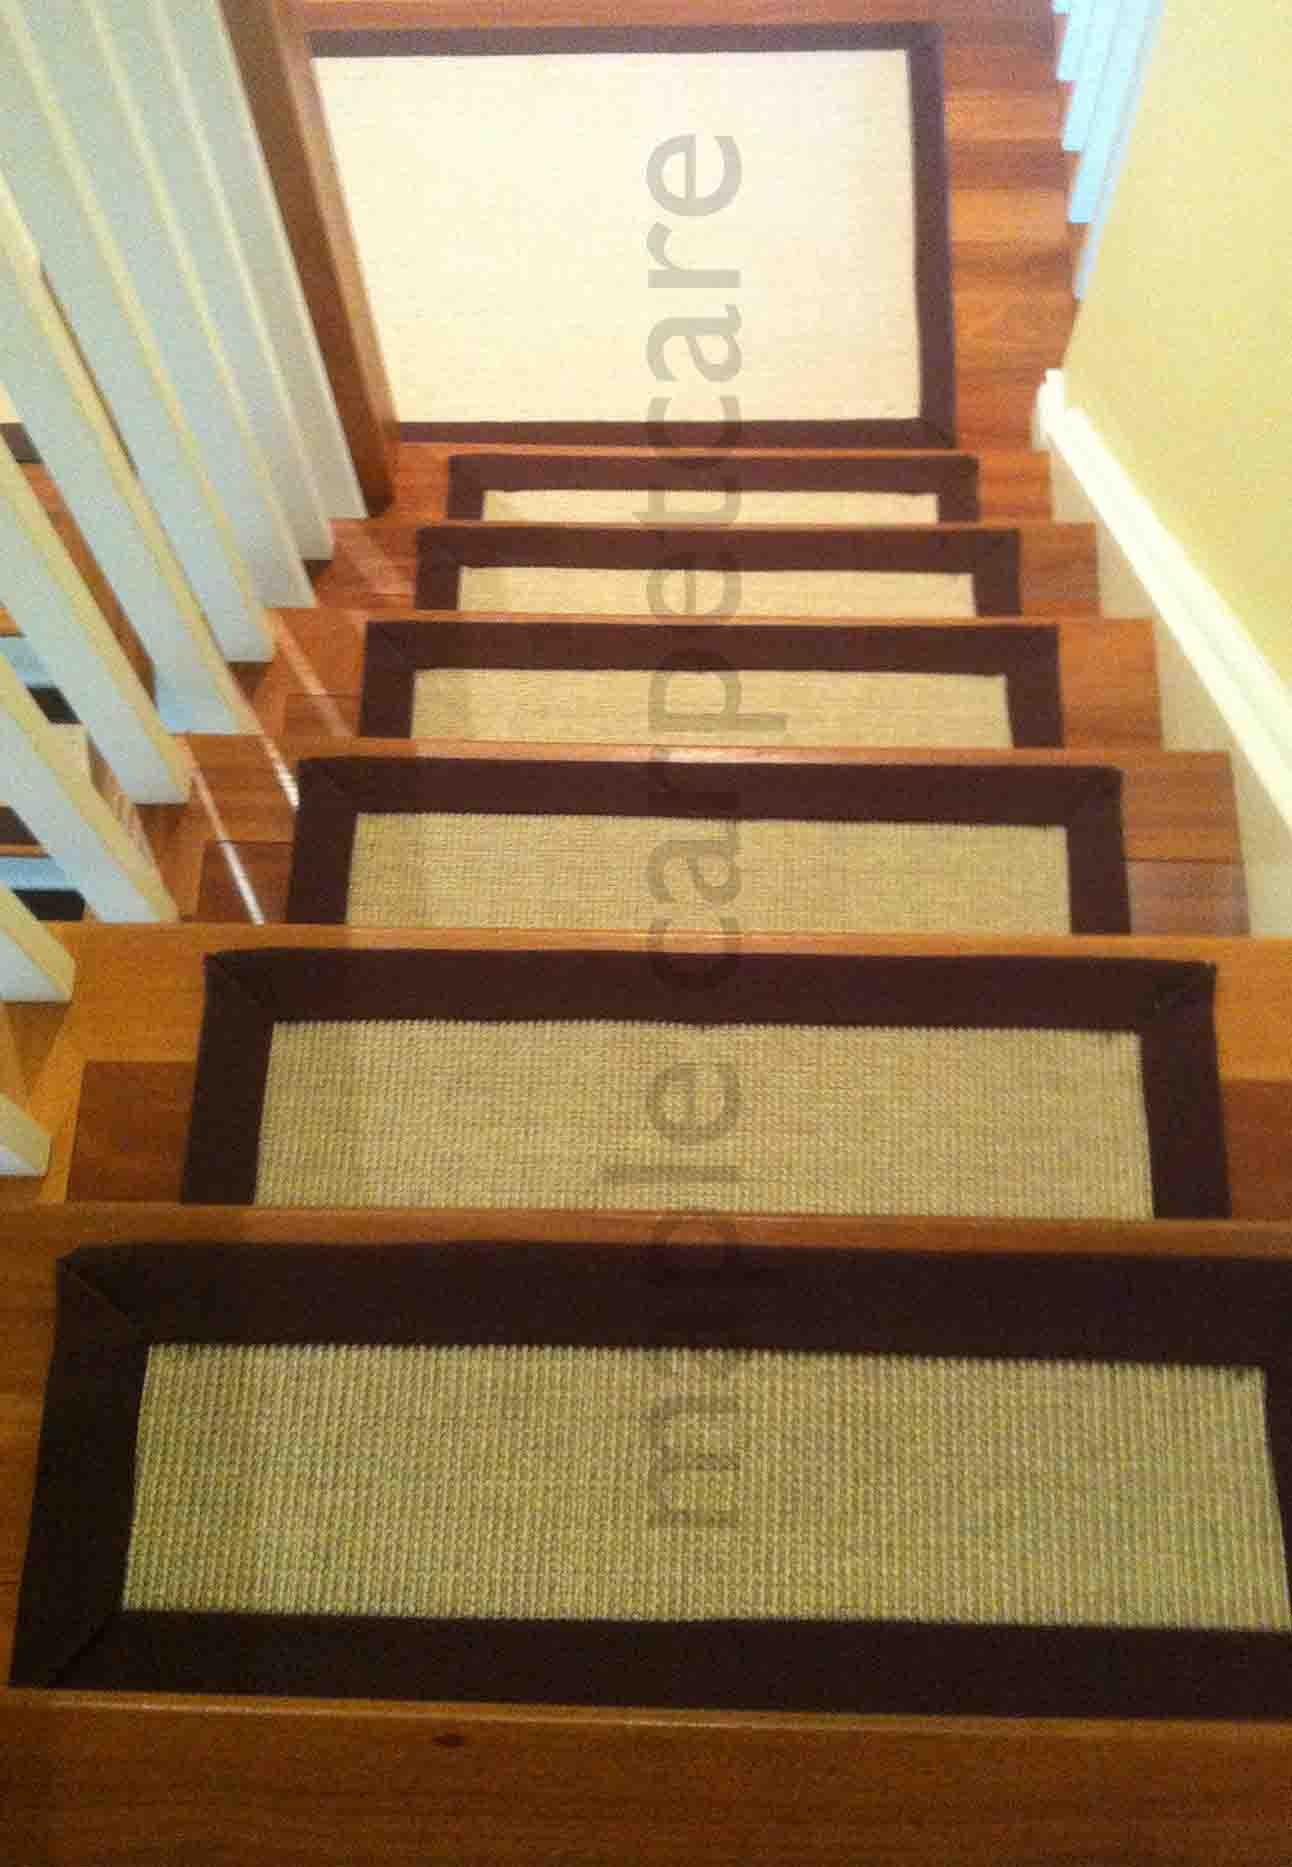 Stair Rugs Rugs For Runners On Stairs Sisal Carpet Laid As Runner With Stair Tread Carpet Runners (Image 13 of 15)